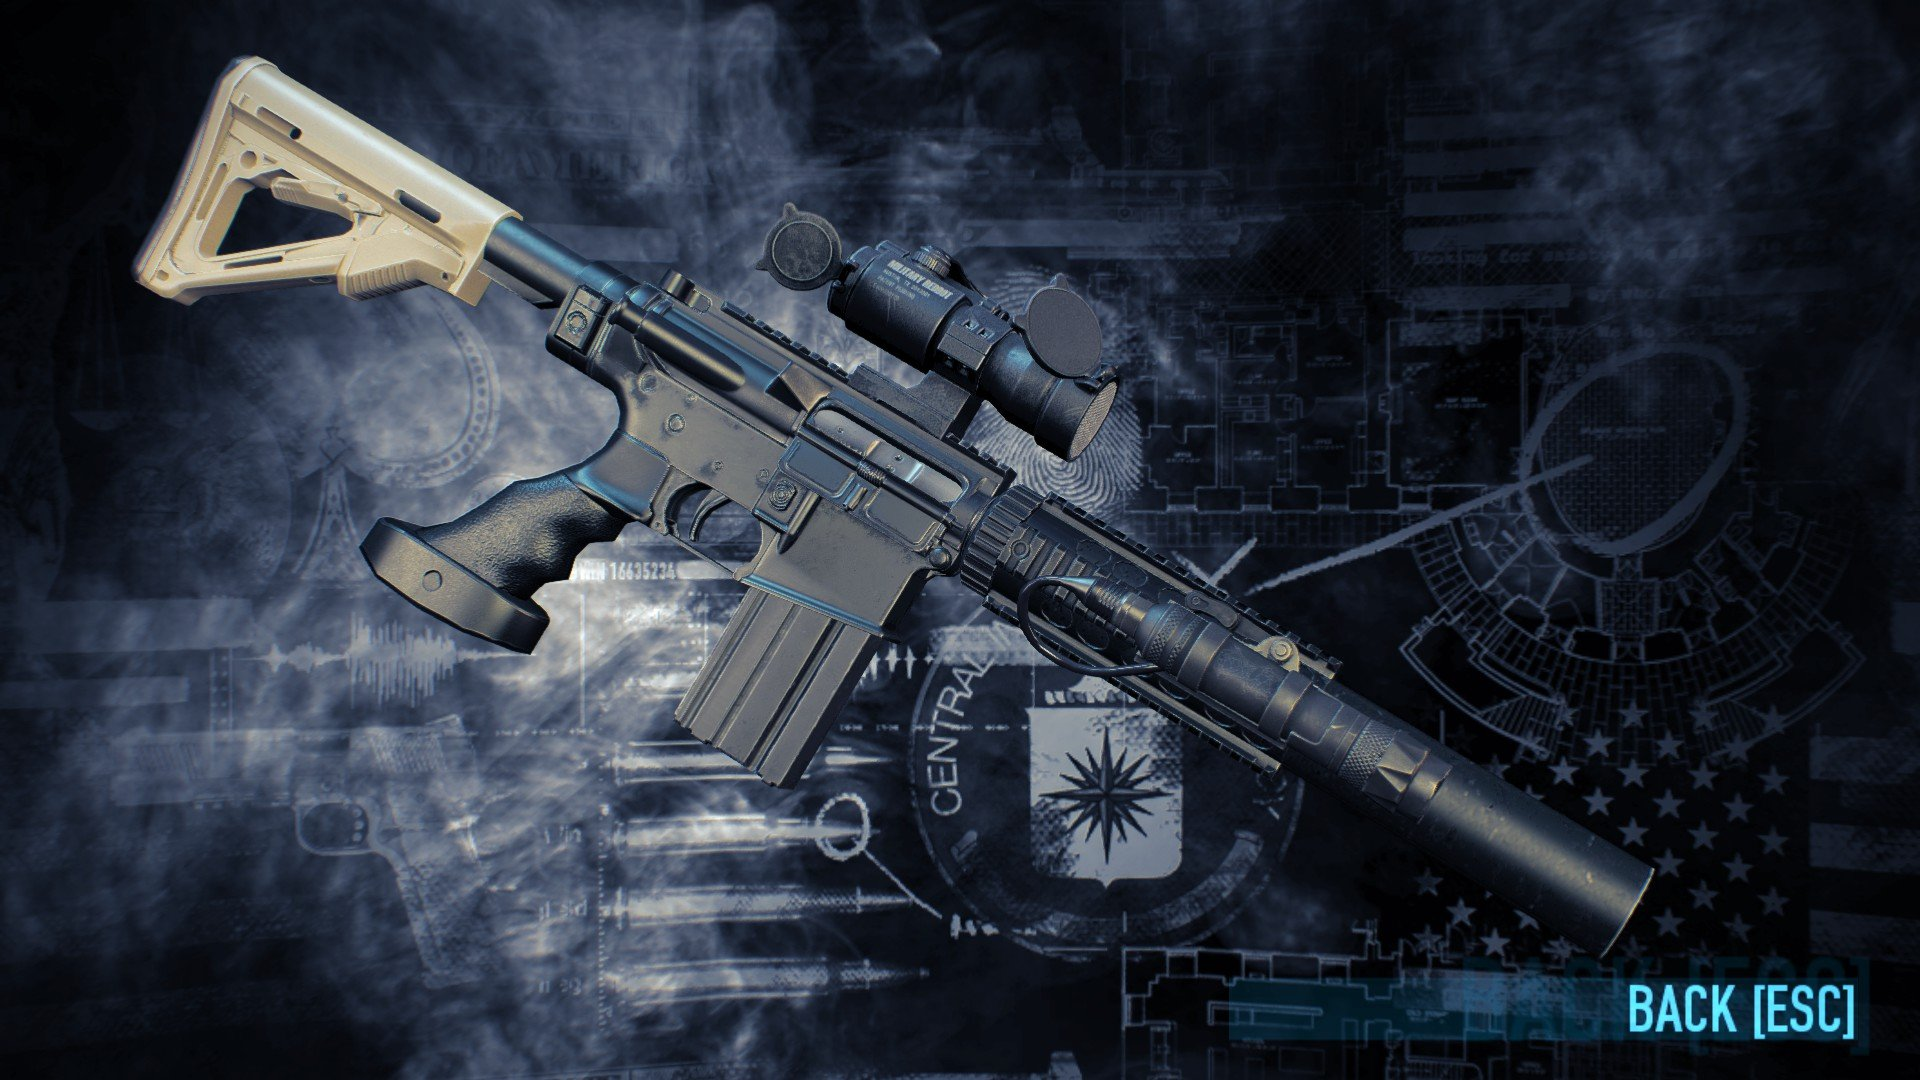 Payday Action Co Op Shooter Tactical Stealth Crime Military Weapon